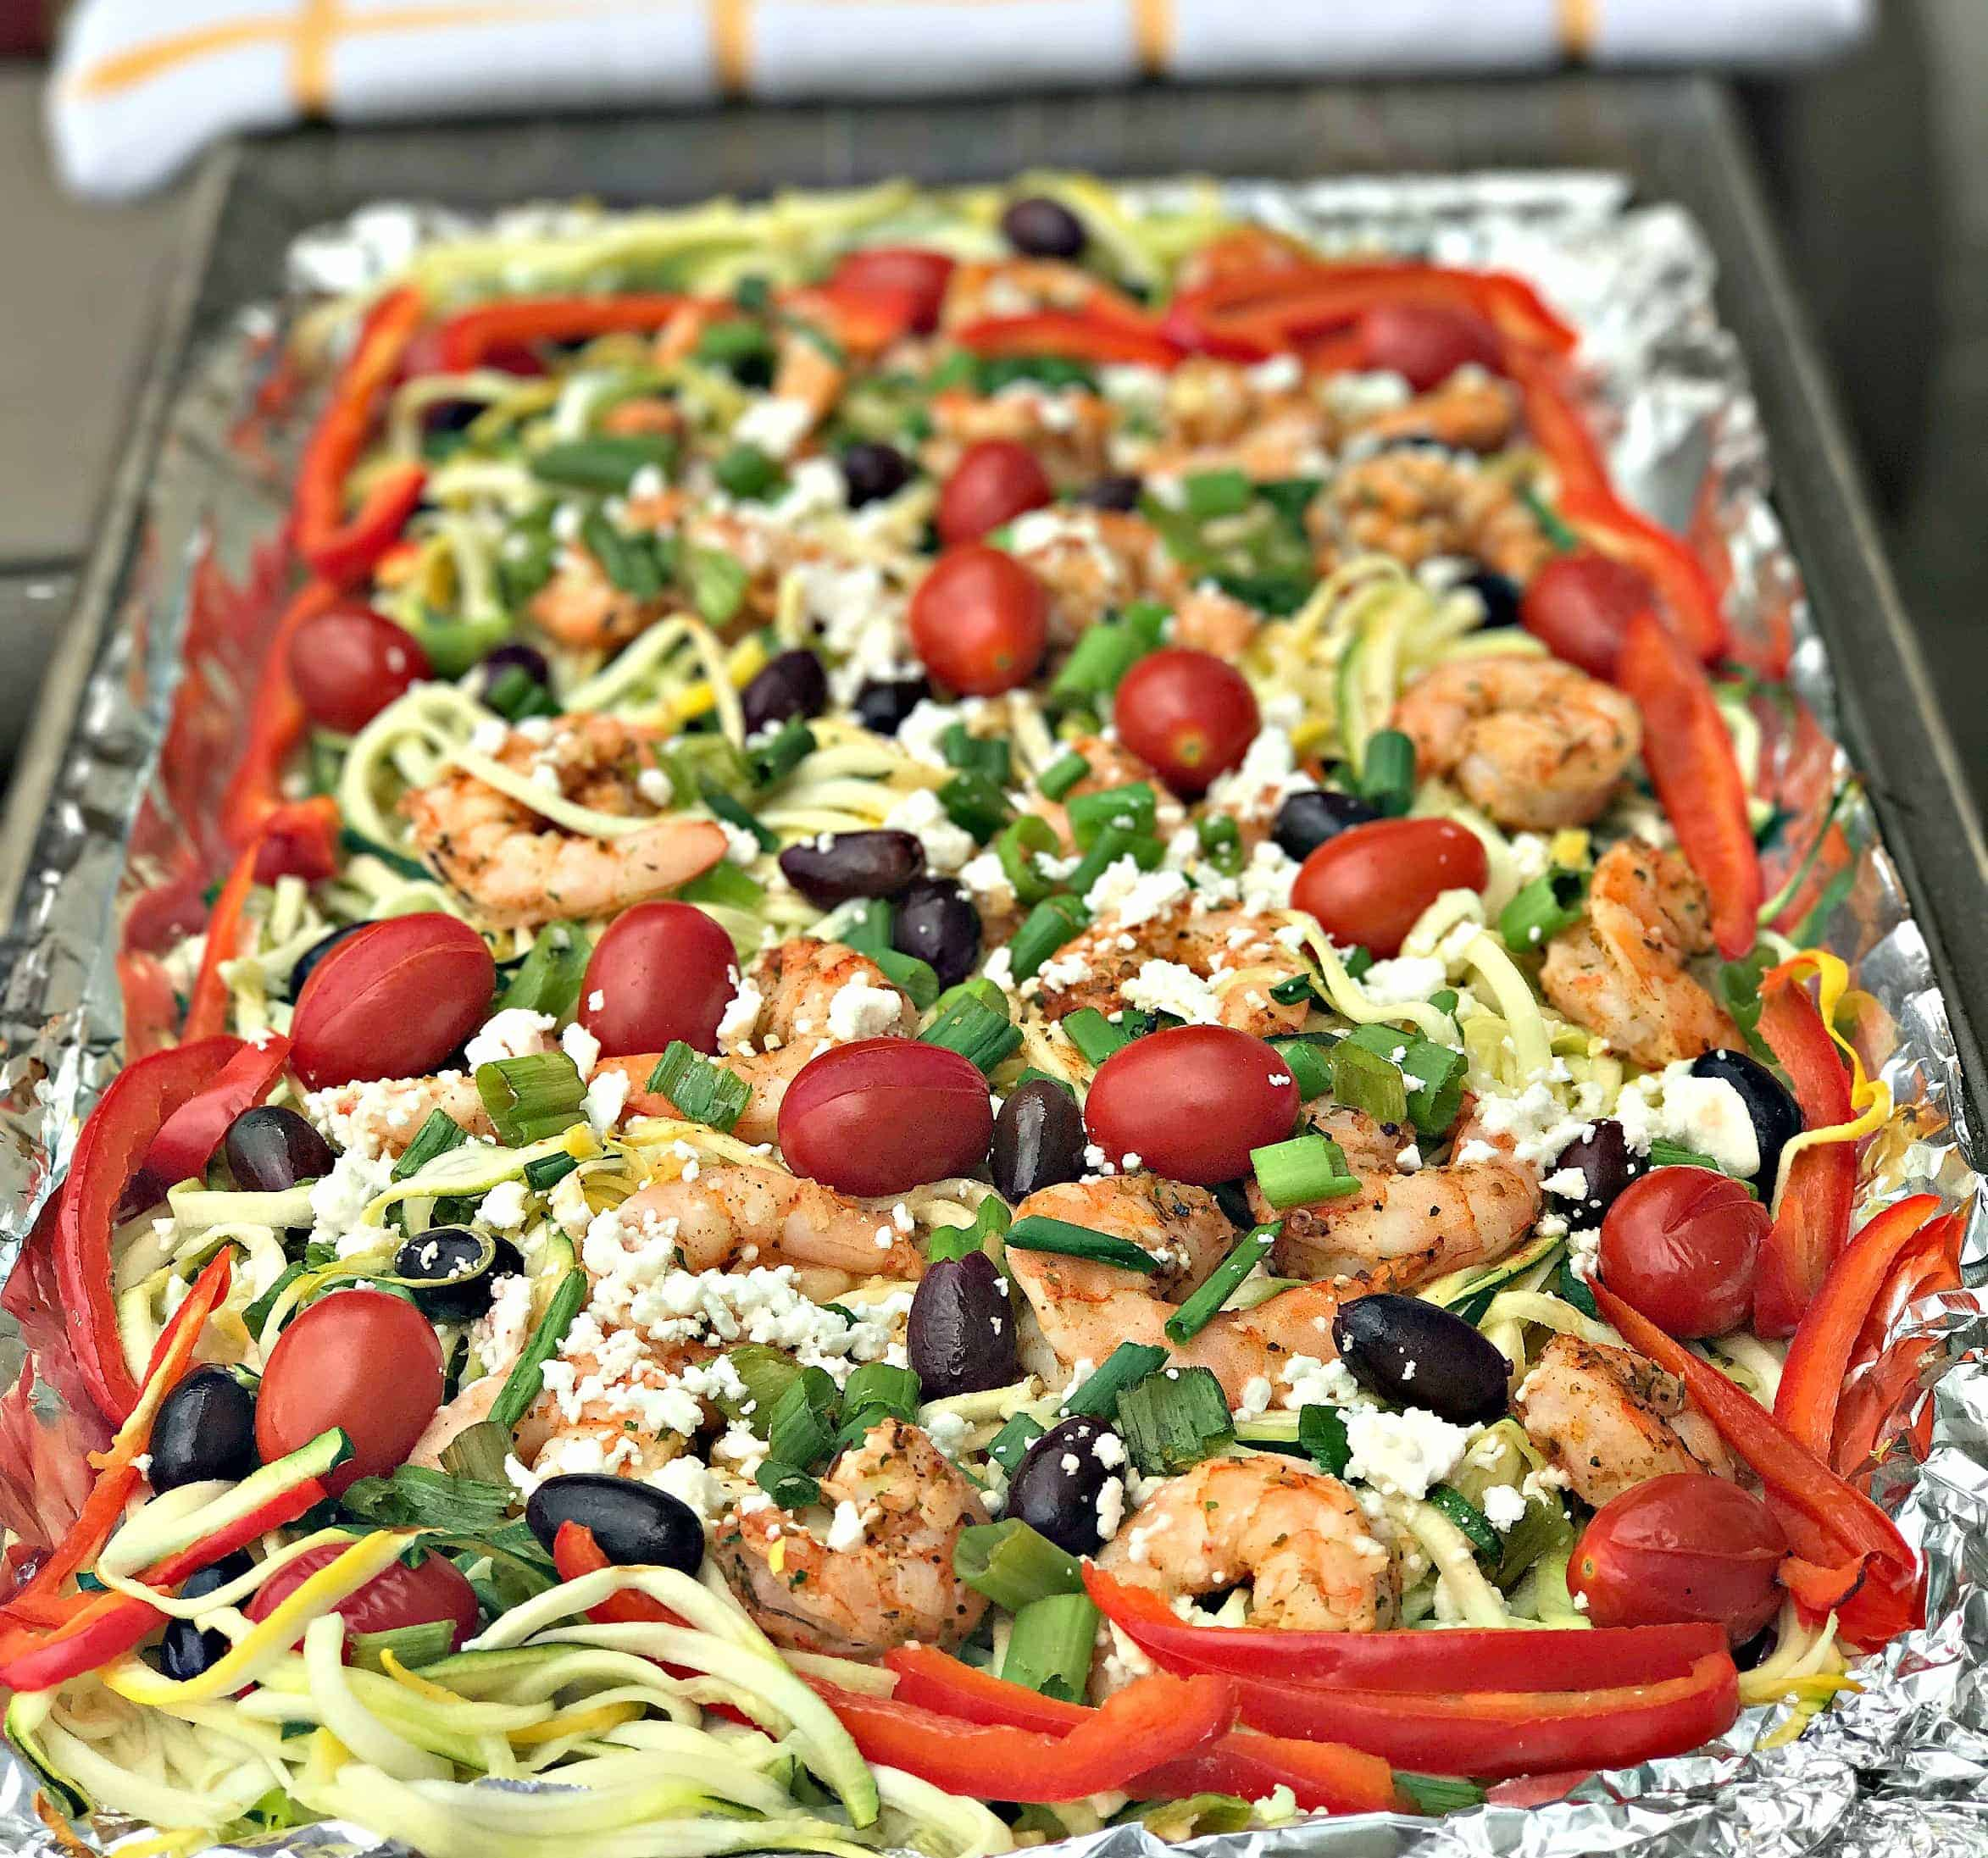 Mediterranean shrimp with zucchini noodles on a foil lined baking sheet